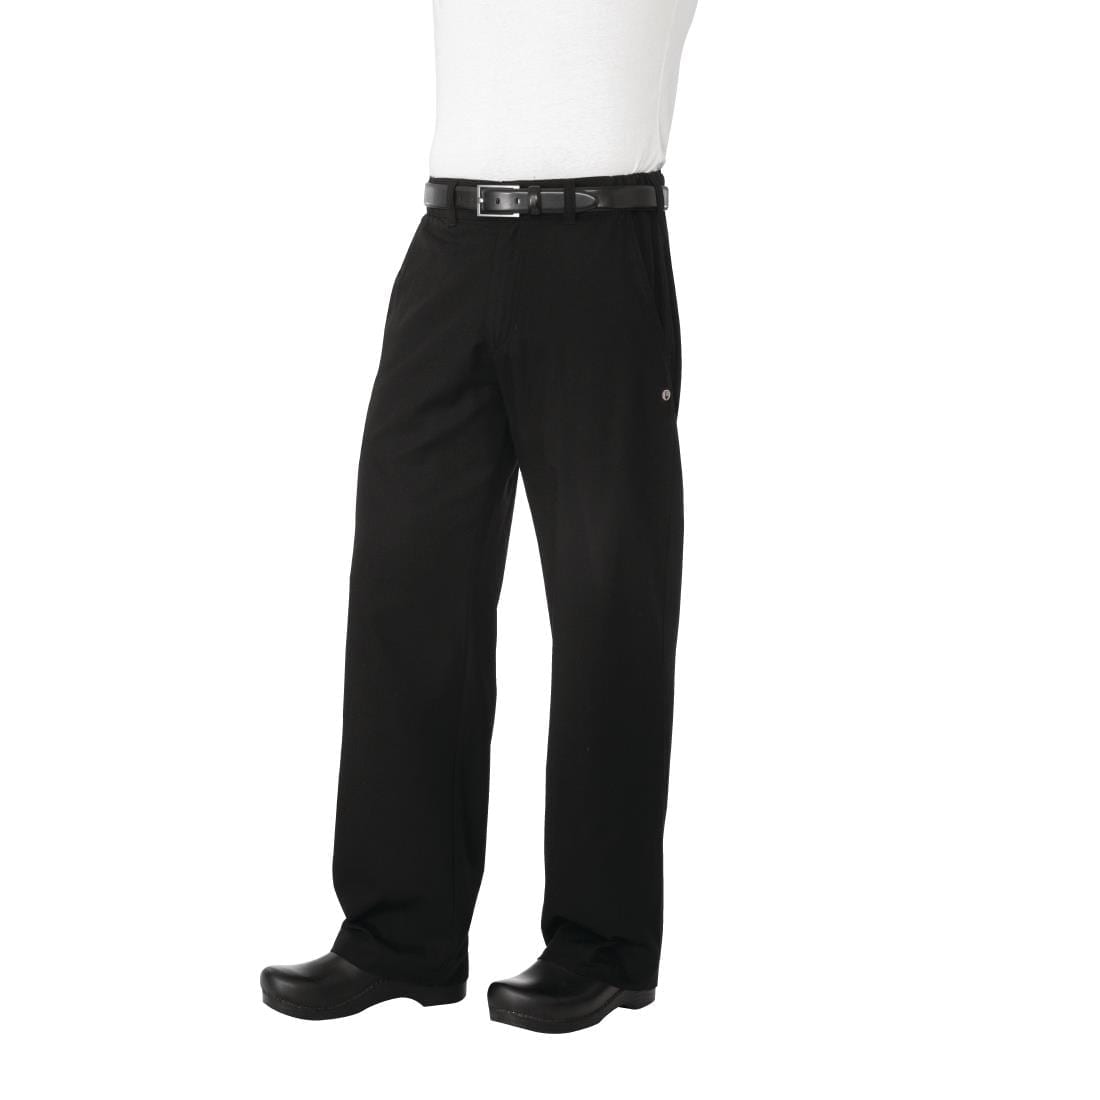 Chef Works Unisex Professional Series Chefs Trousers Black Herringbone L